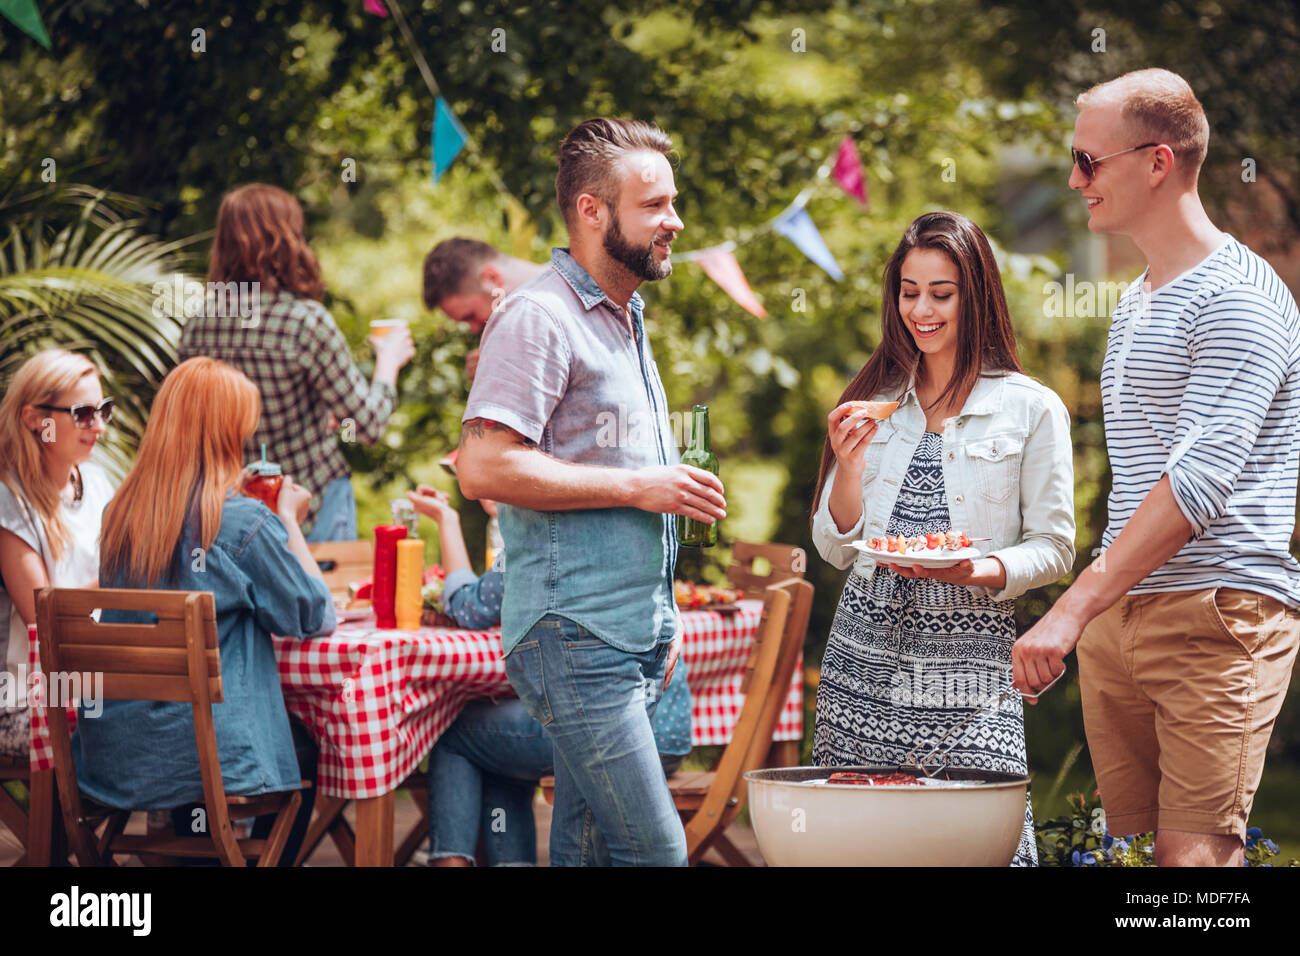 Student friends talking over a grill during a garden party in the summer - Stock Image